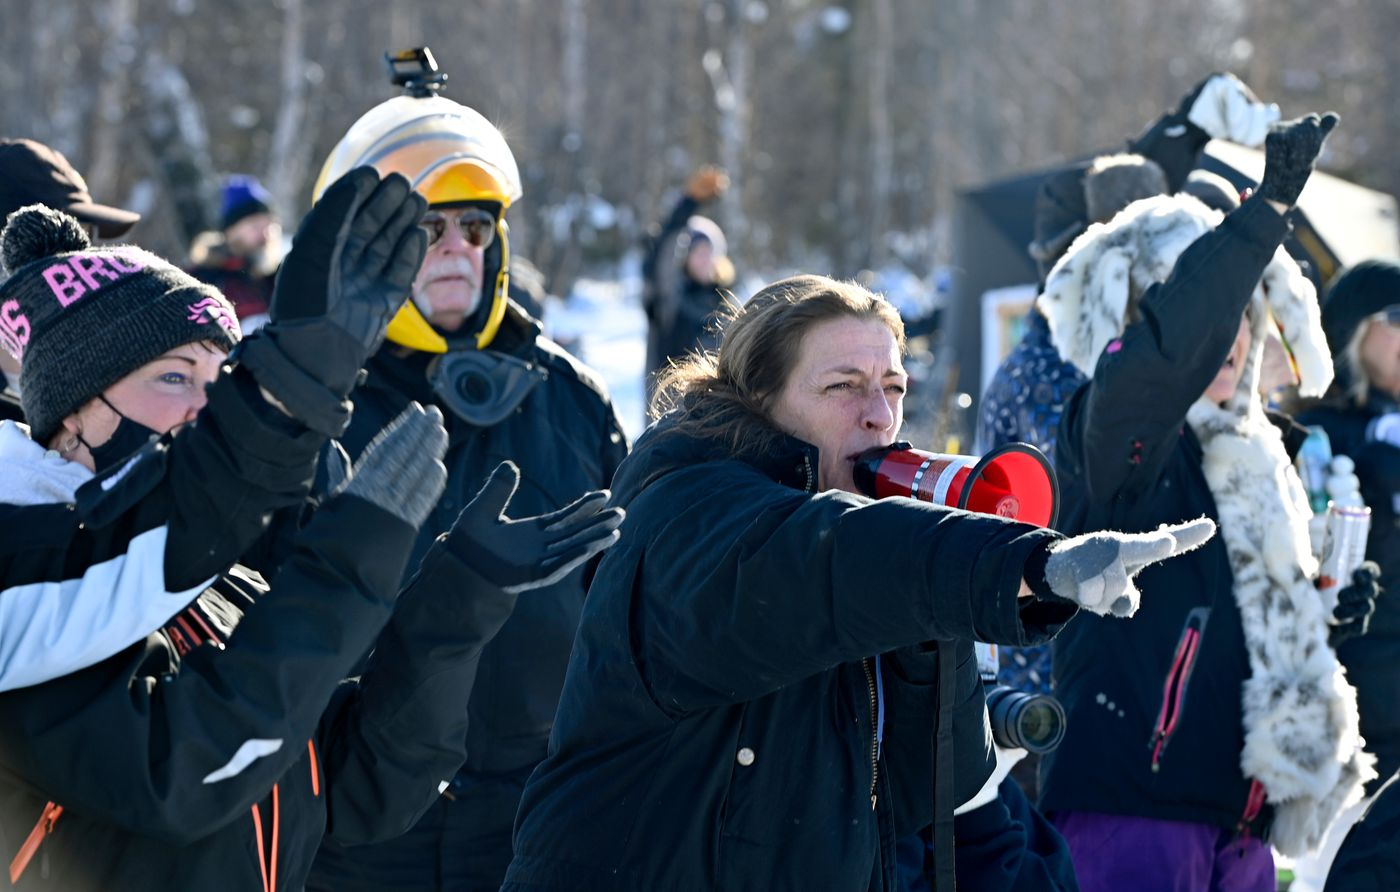 Cindy Hite, center, cheers on mushers with a megaphone at the start of the Iditarod at Deshka Landing in Willow. (Marc Lester / ADN)